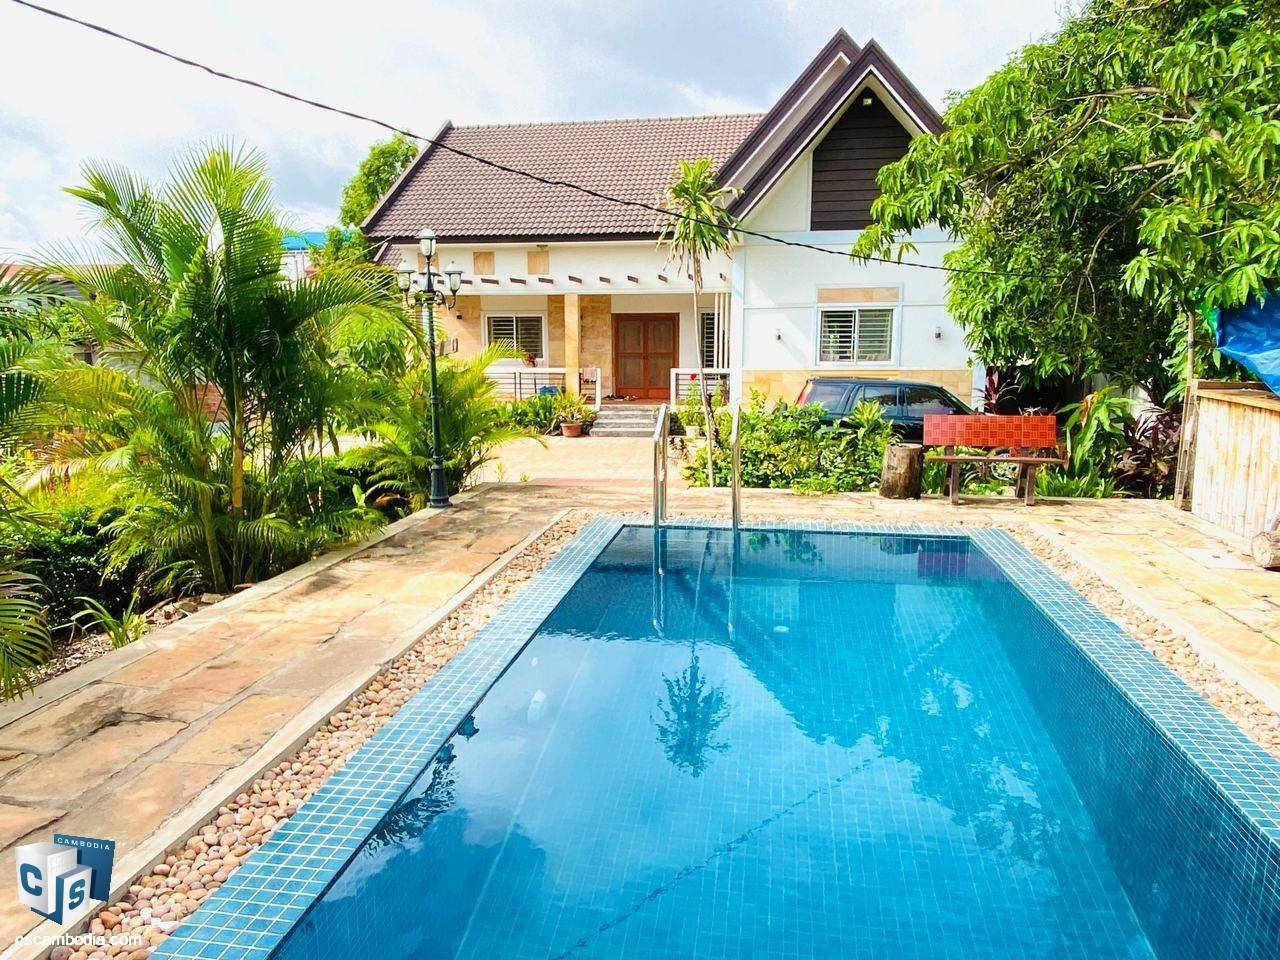 House For Rent In Sla kram – Siem Reap